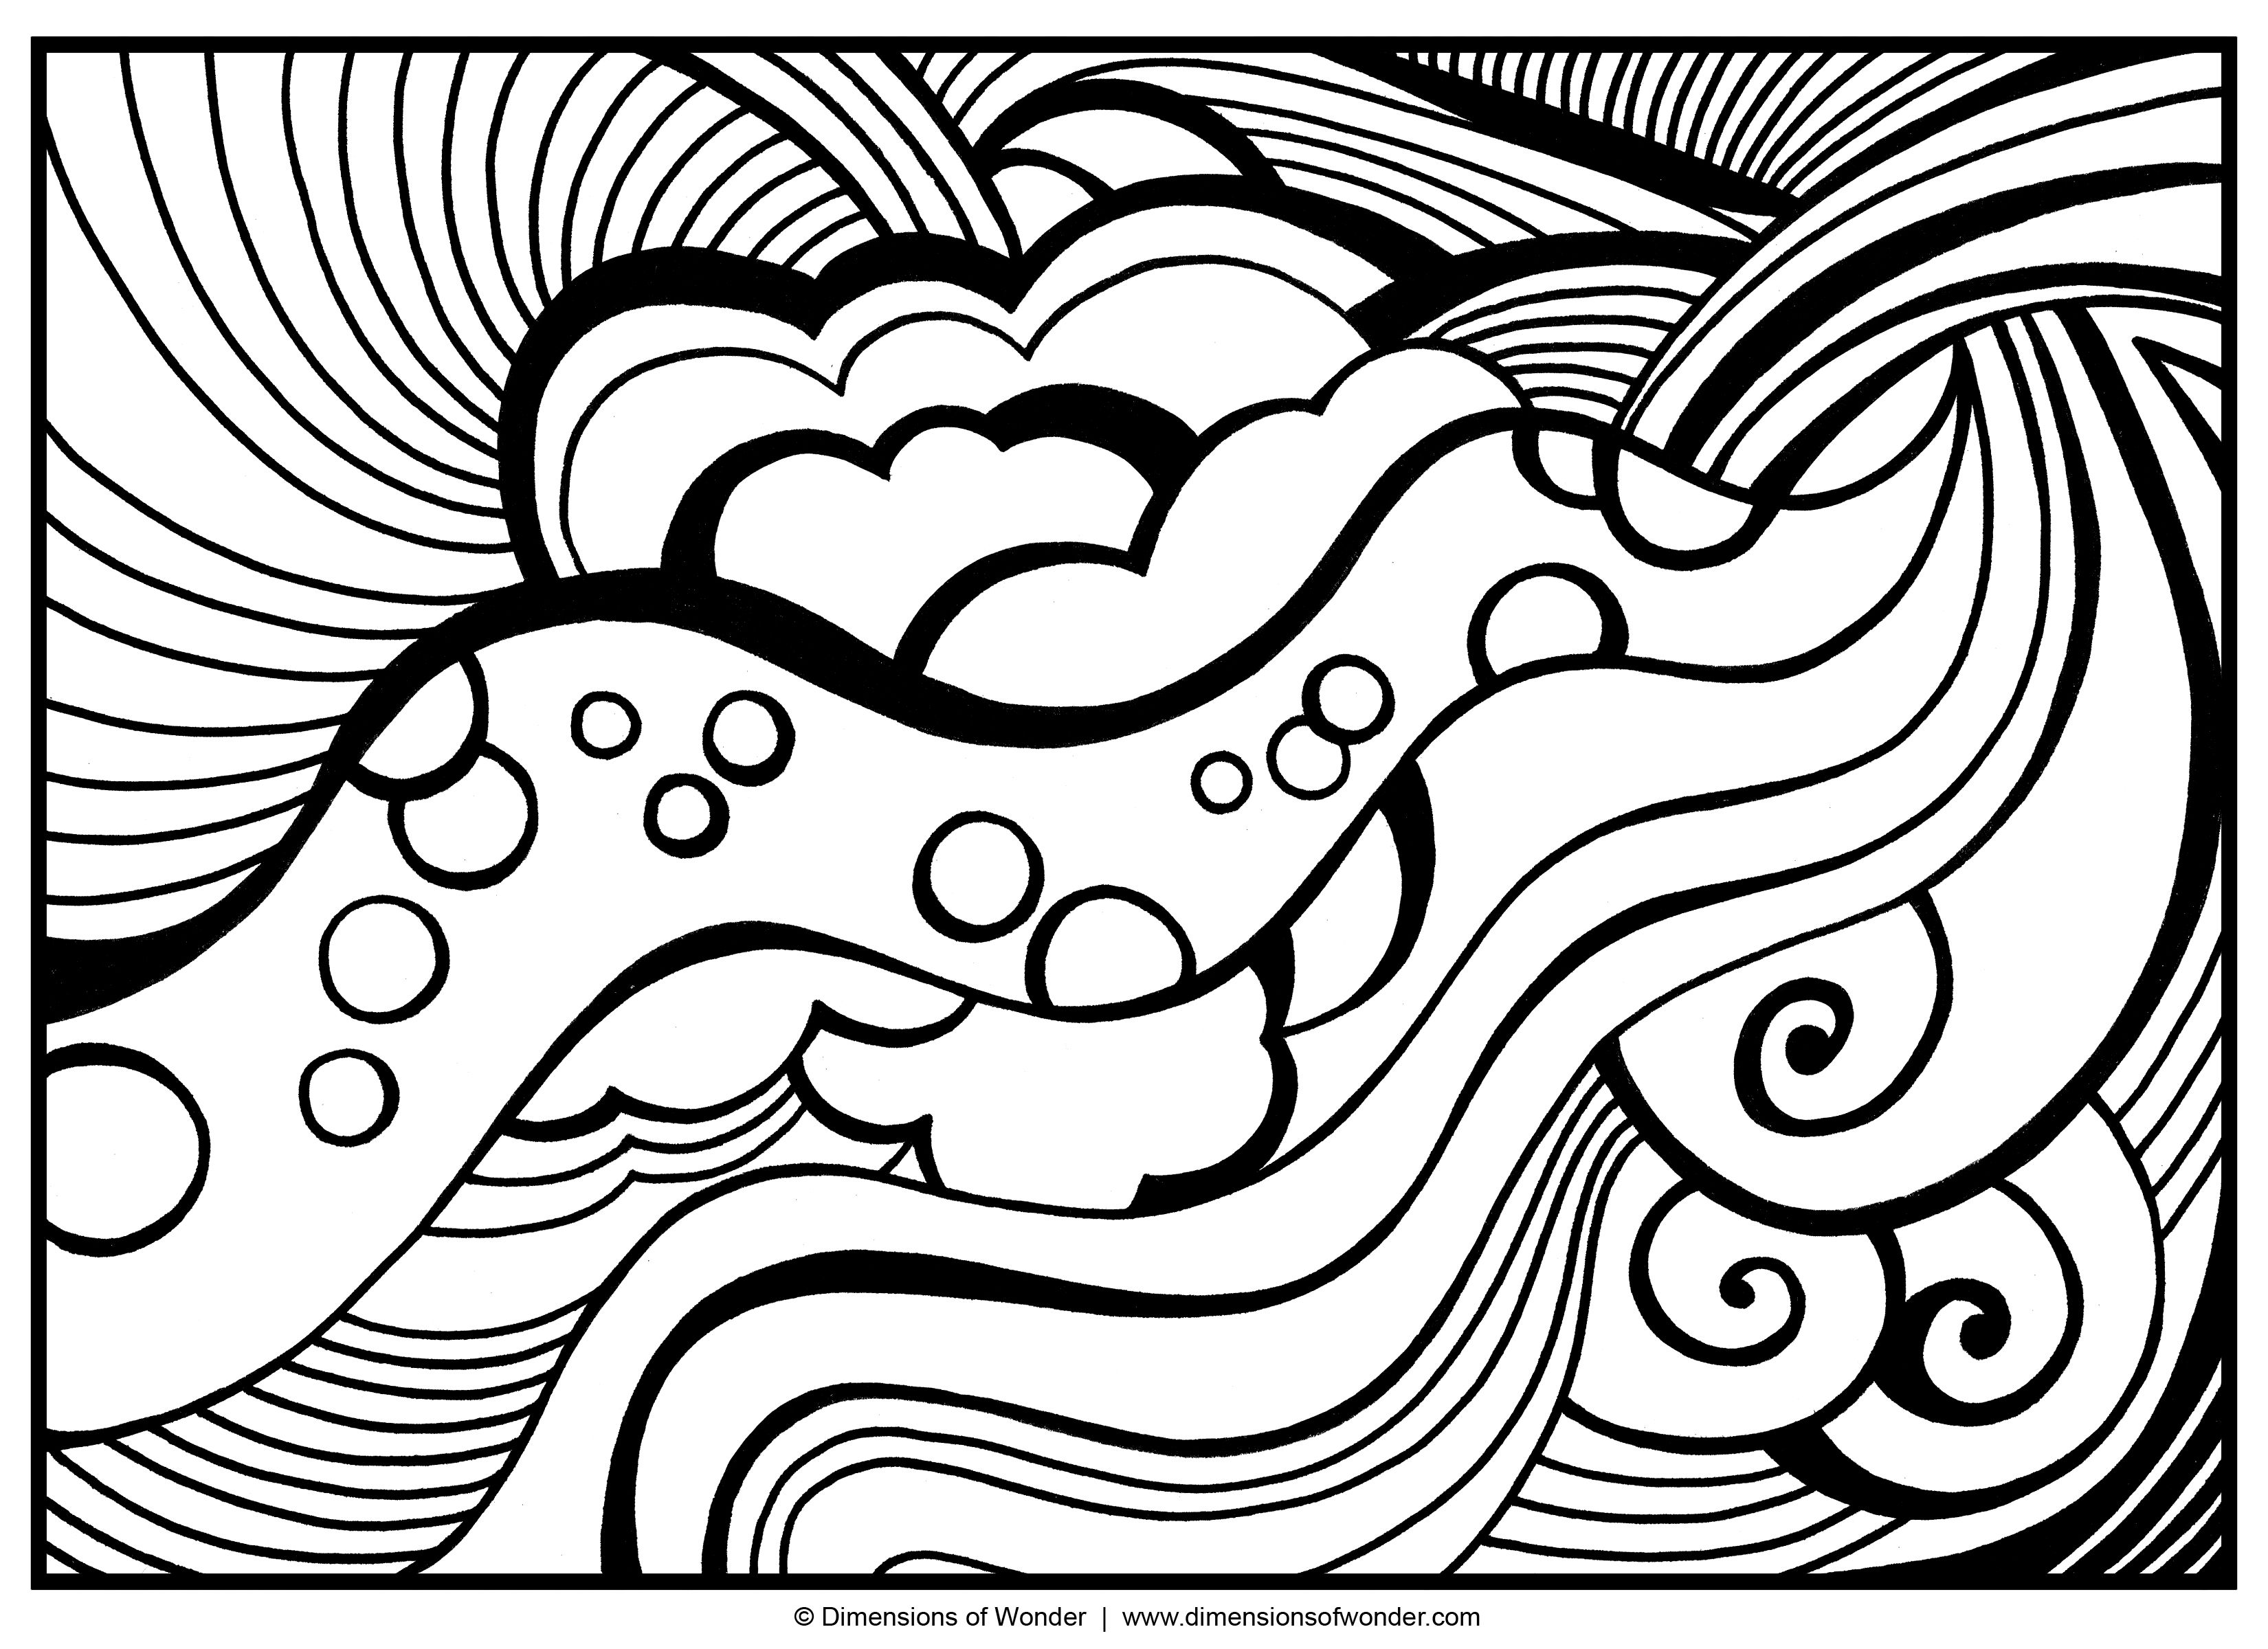 Free coloring pages for young adults - Abstract Coloring Pages Free Large Images